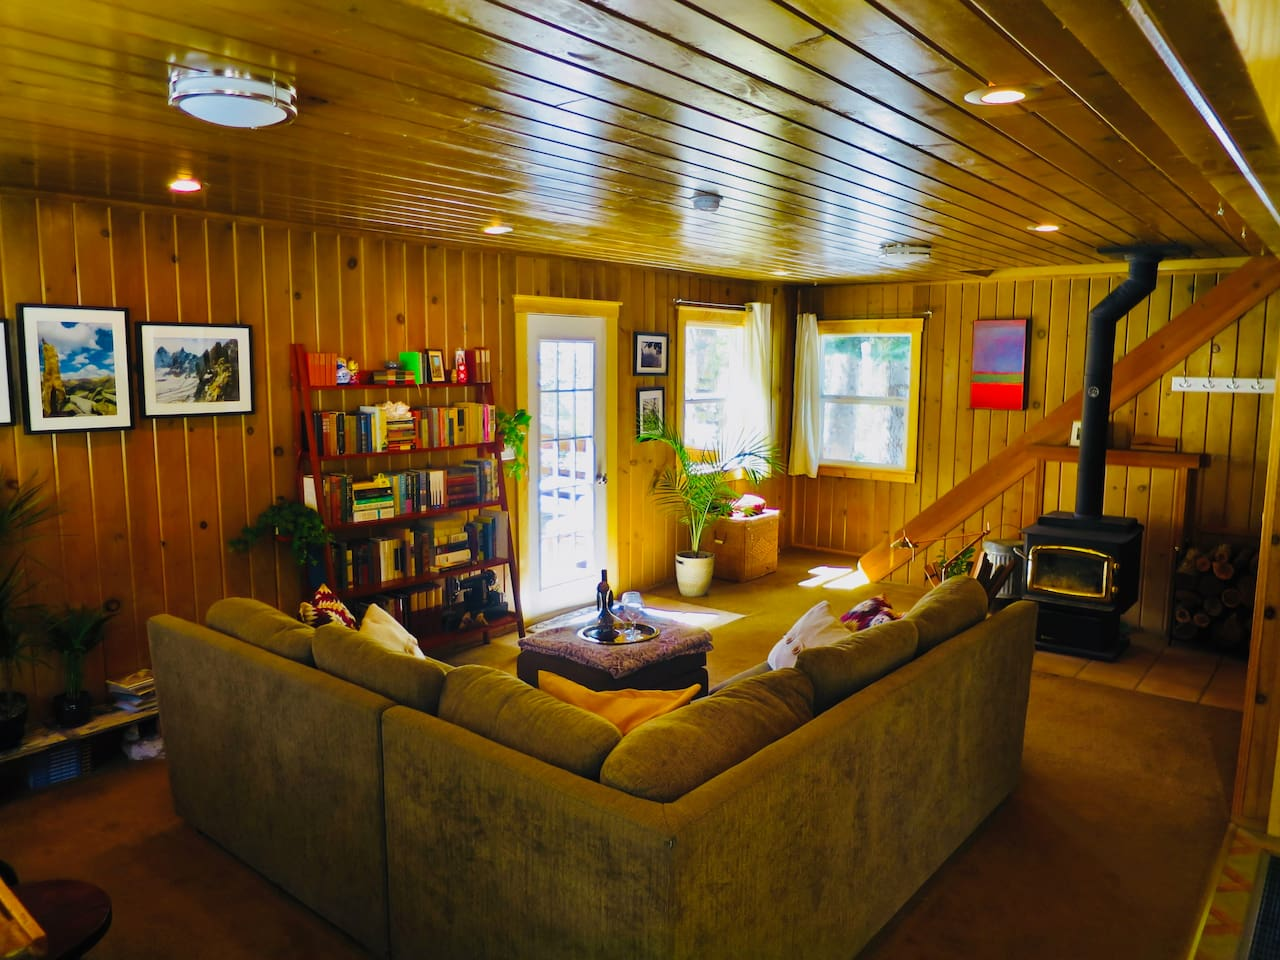 Living room / common area with wood firelace